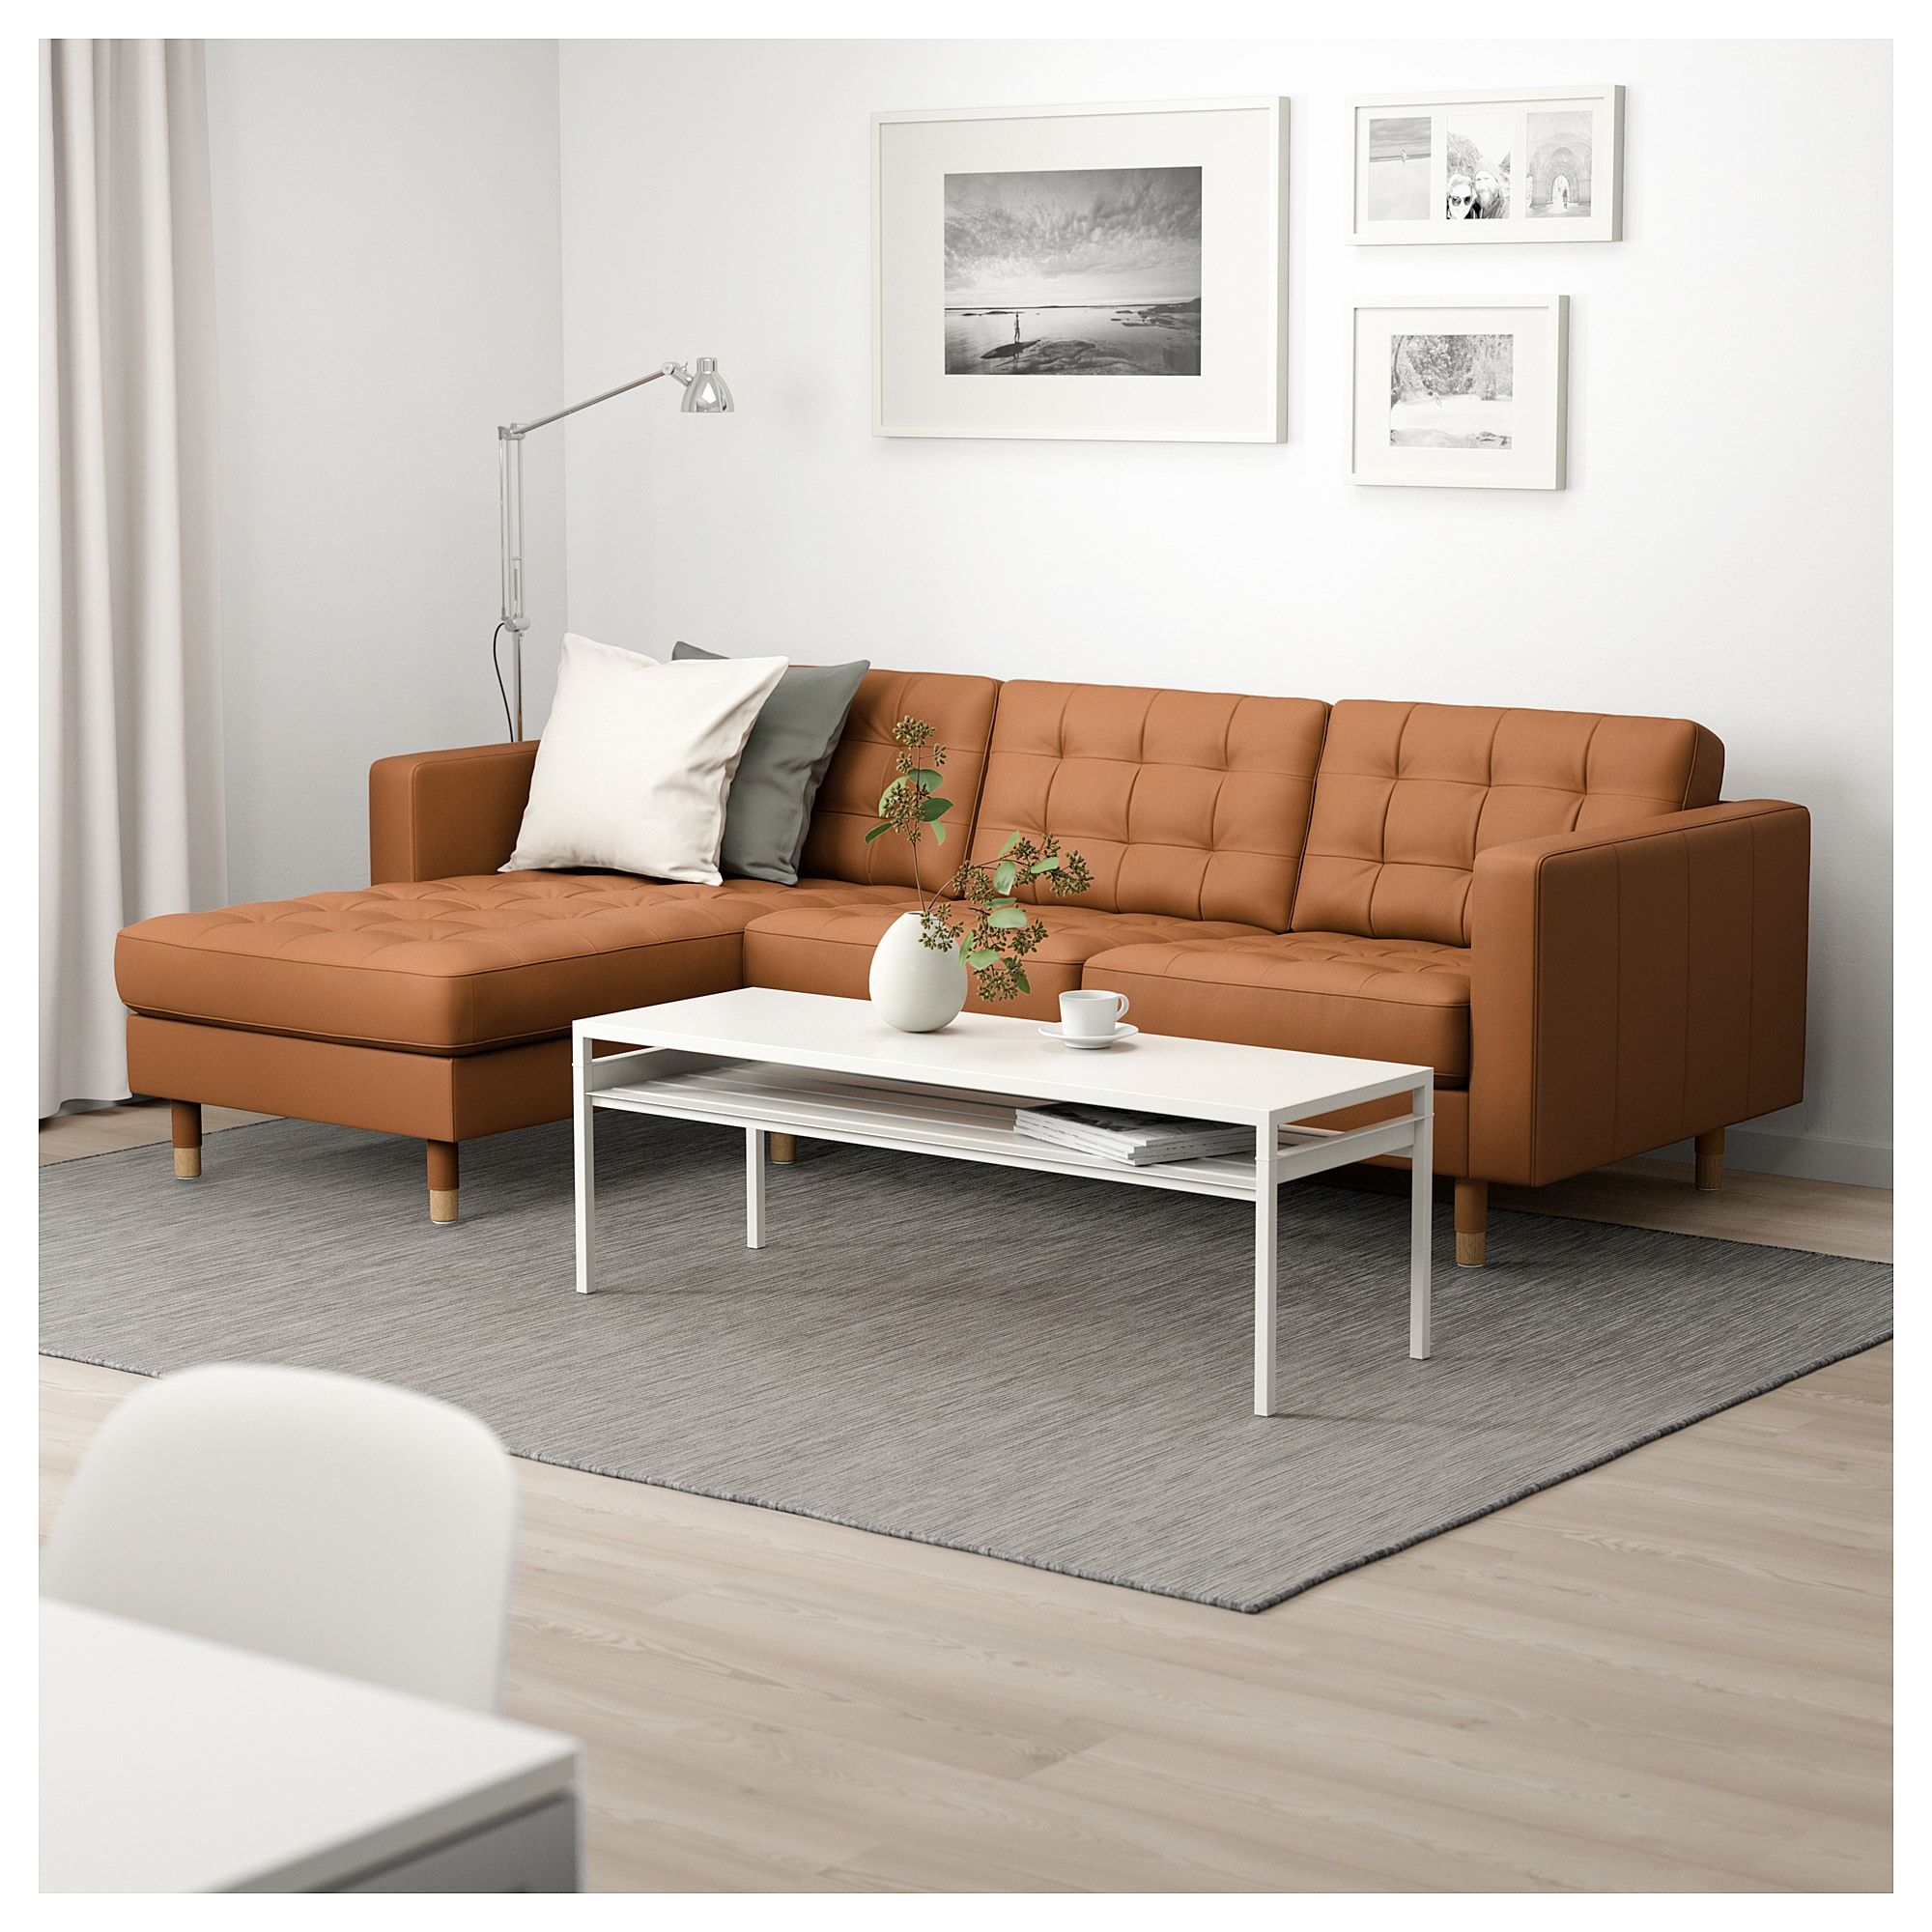 Ikea Ledersofa Test Landskrona Sofa With Chaise Grann Bomstad Golden Brown Metal